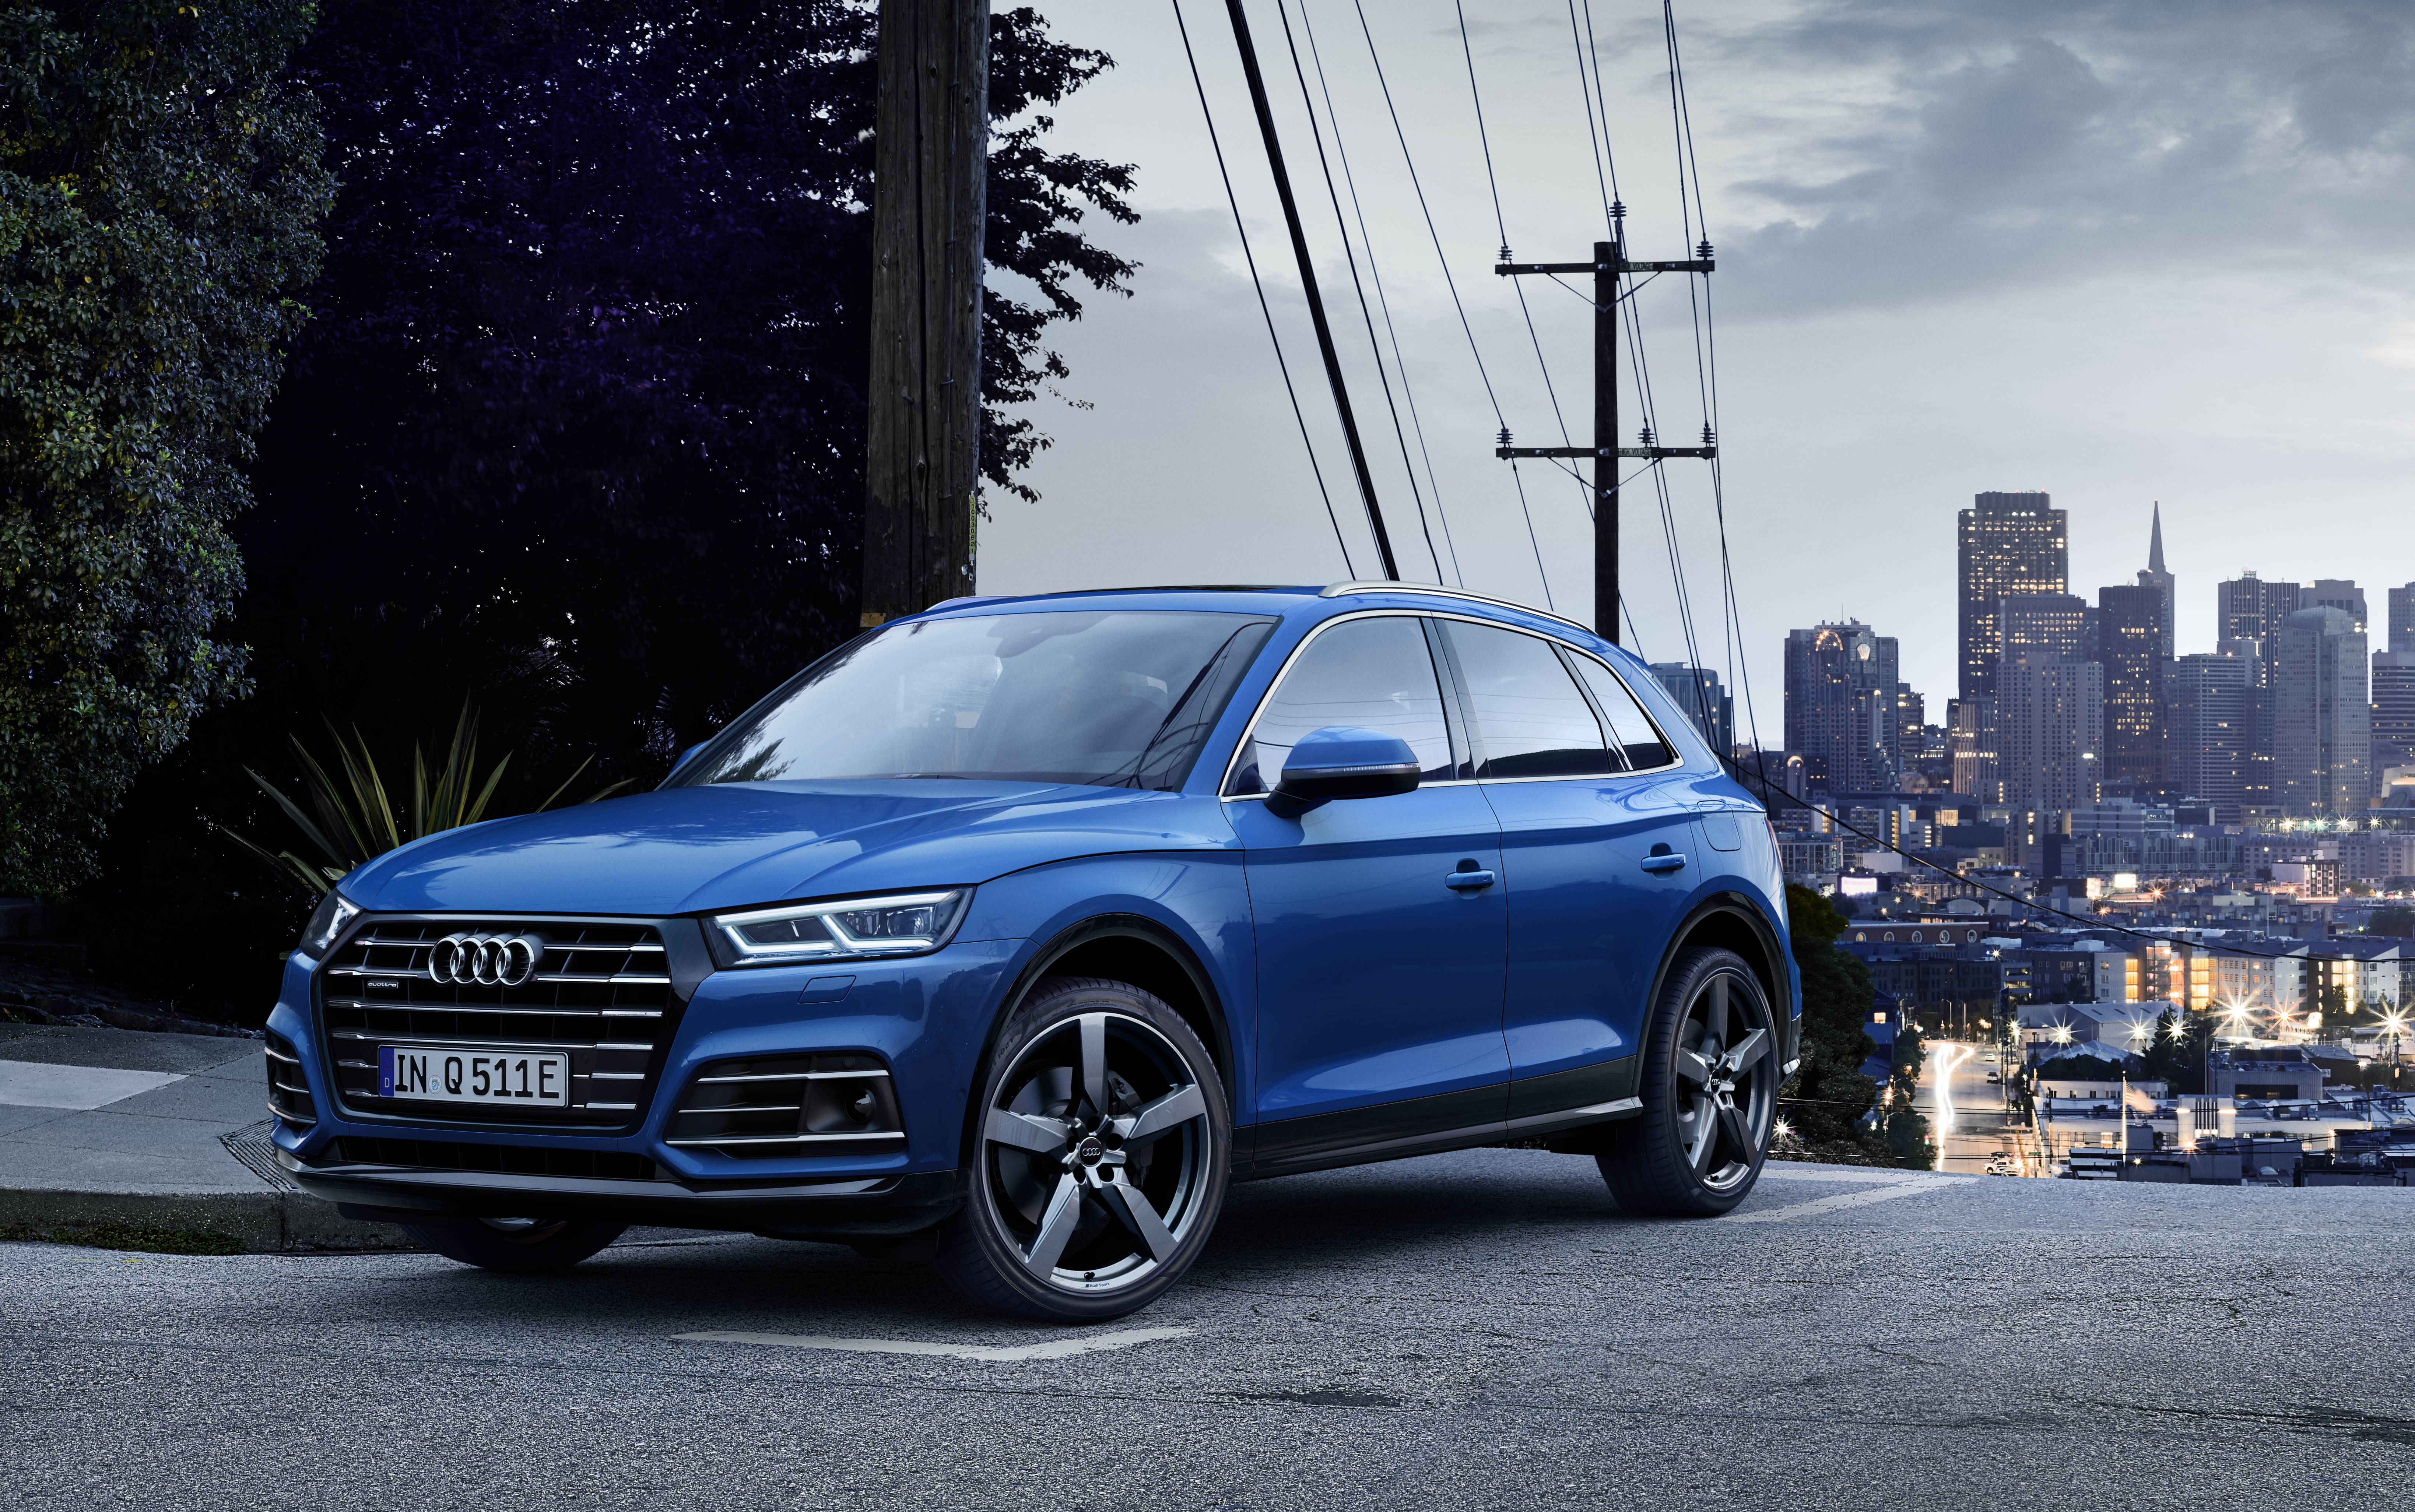 2019 Audi Q5 5k Hd Cars 4k Wallpapers Images Backgrounds